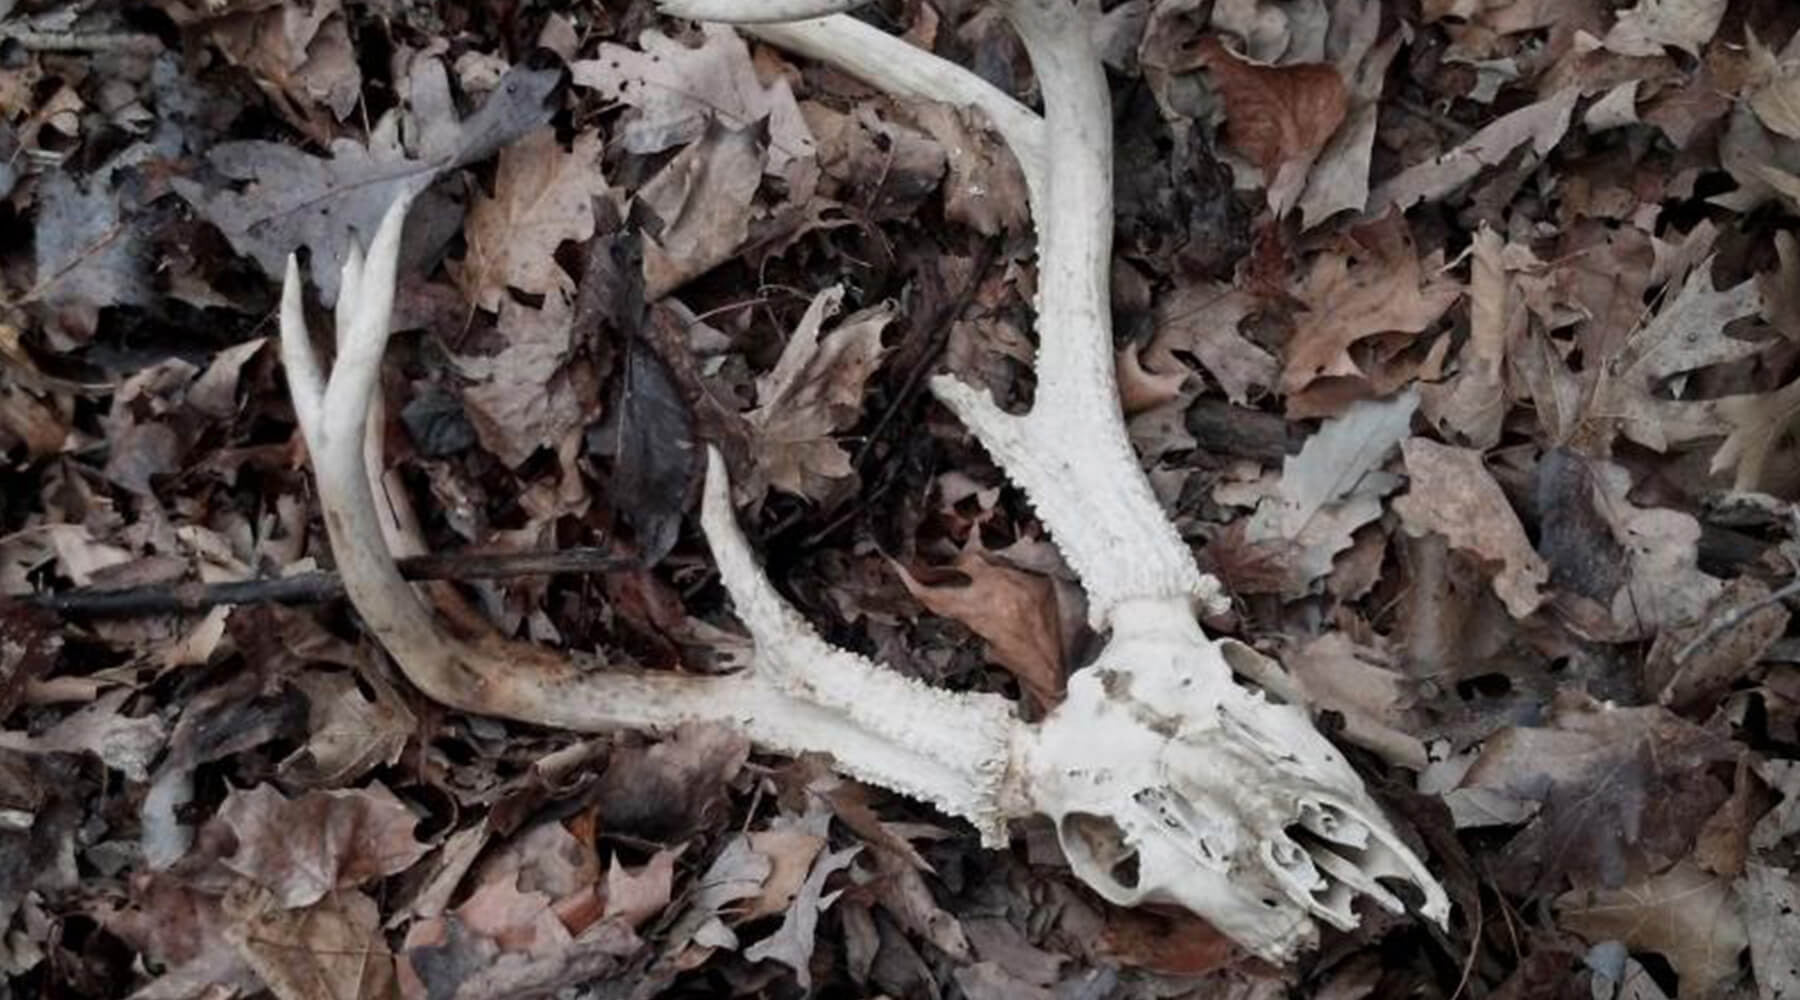 Shed Antler Hunting: The Aftermath of EHD